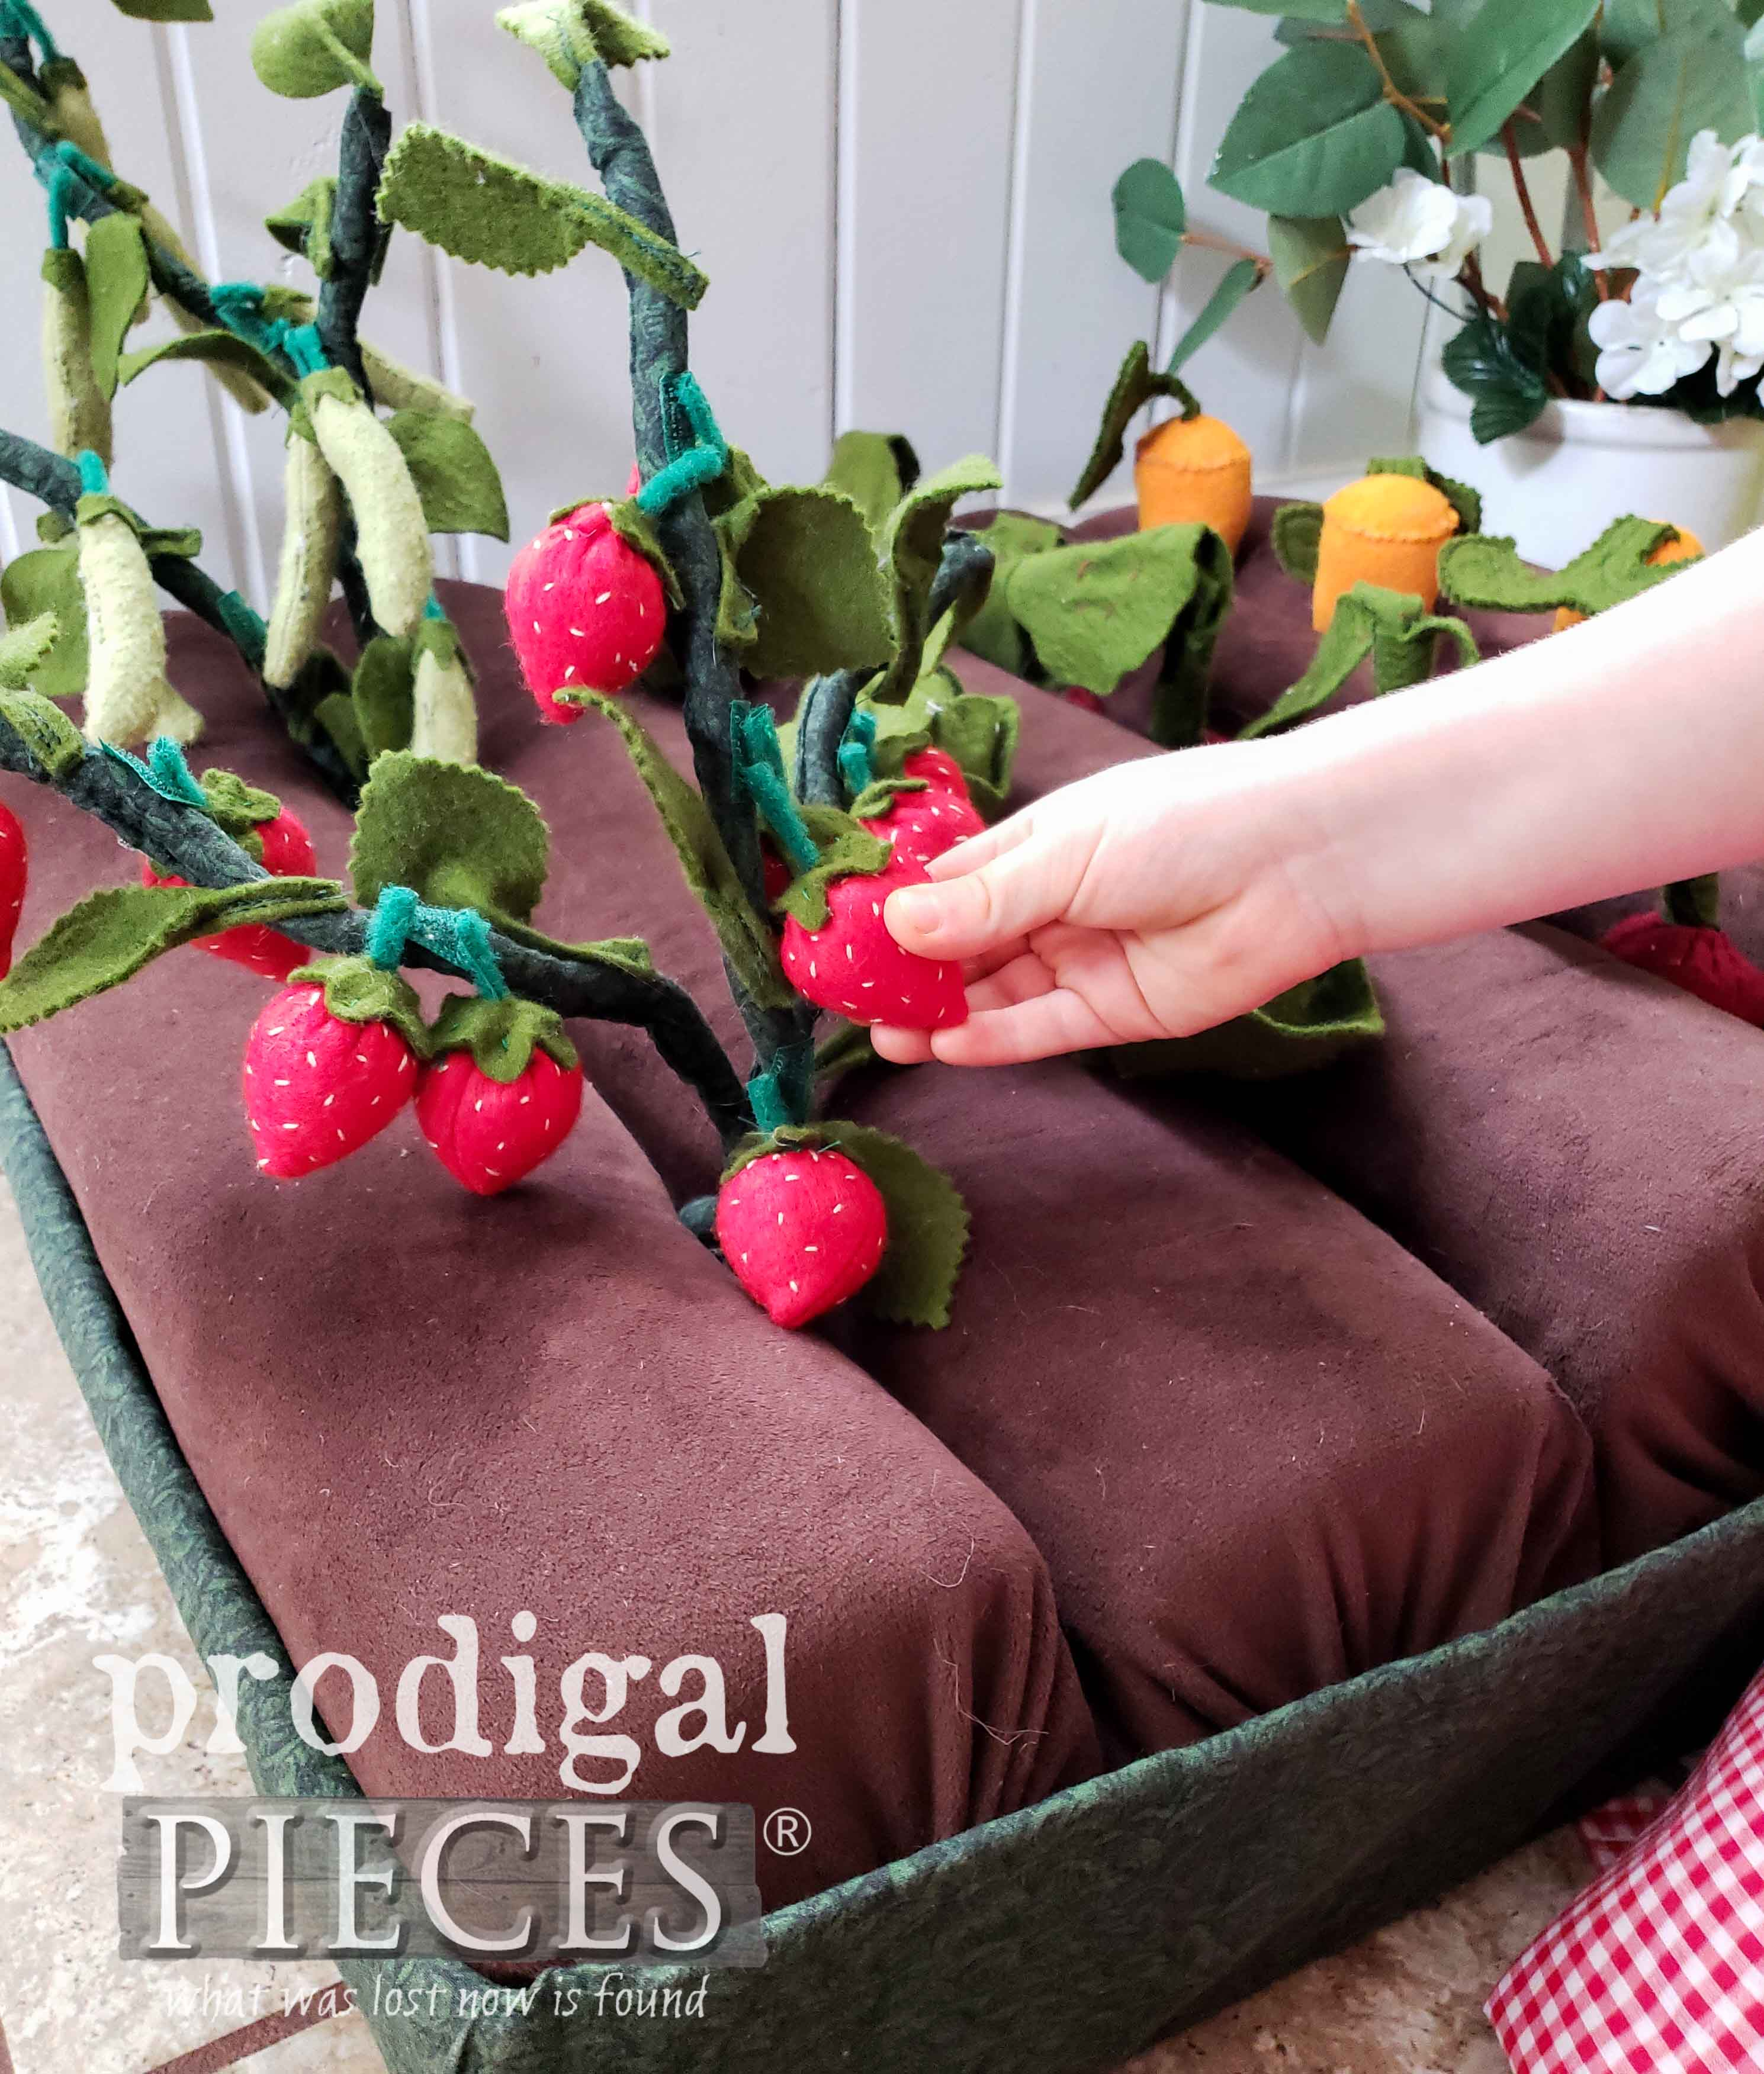 Pretend Play Garden with Strawberries by Larissa of Prodigal Pieces | prodigalpieces.com